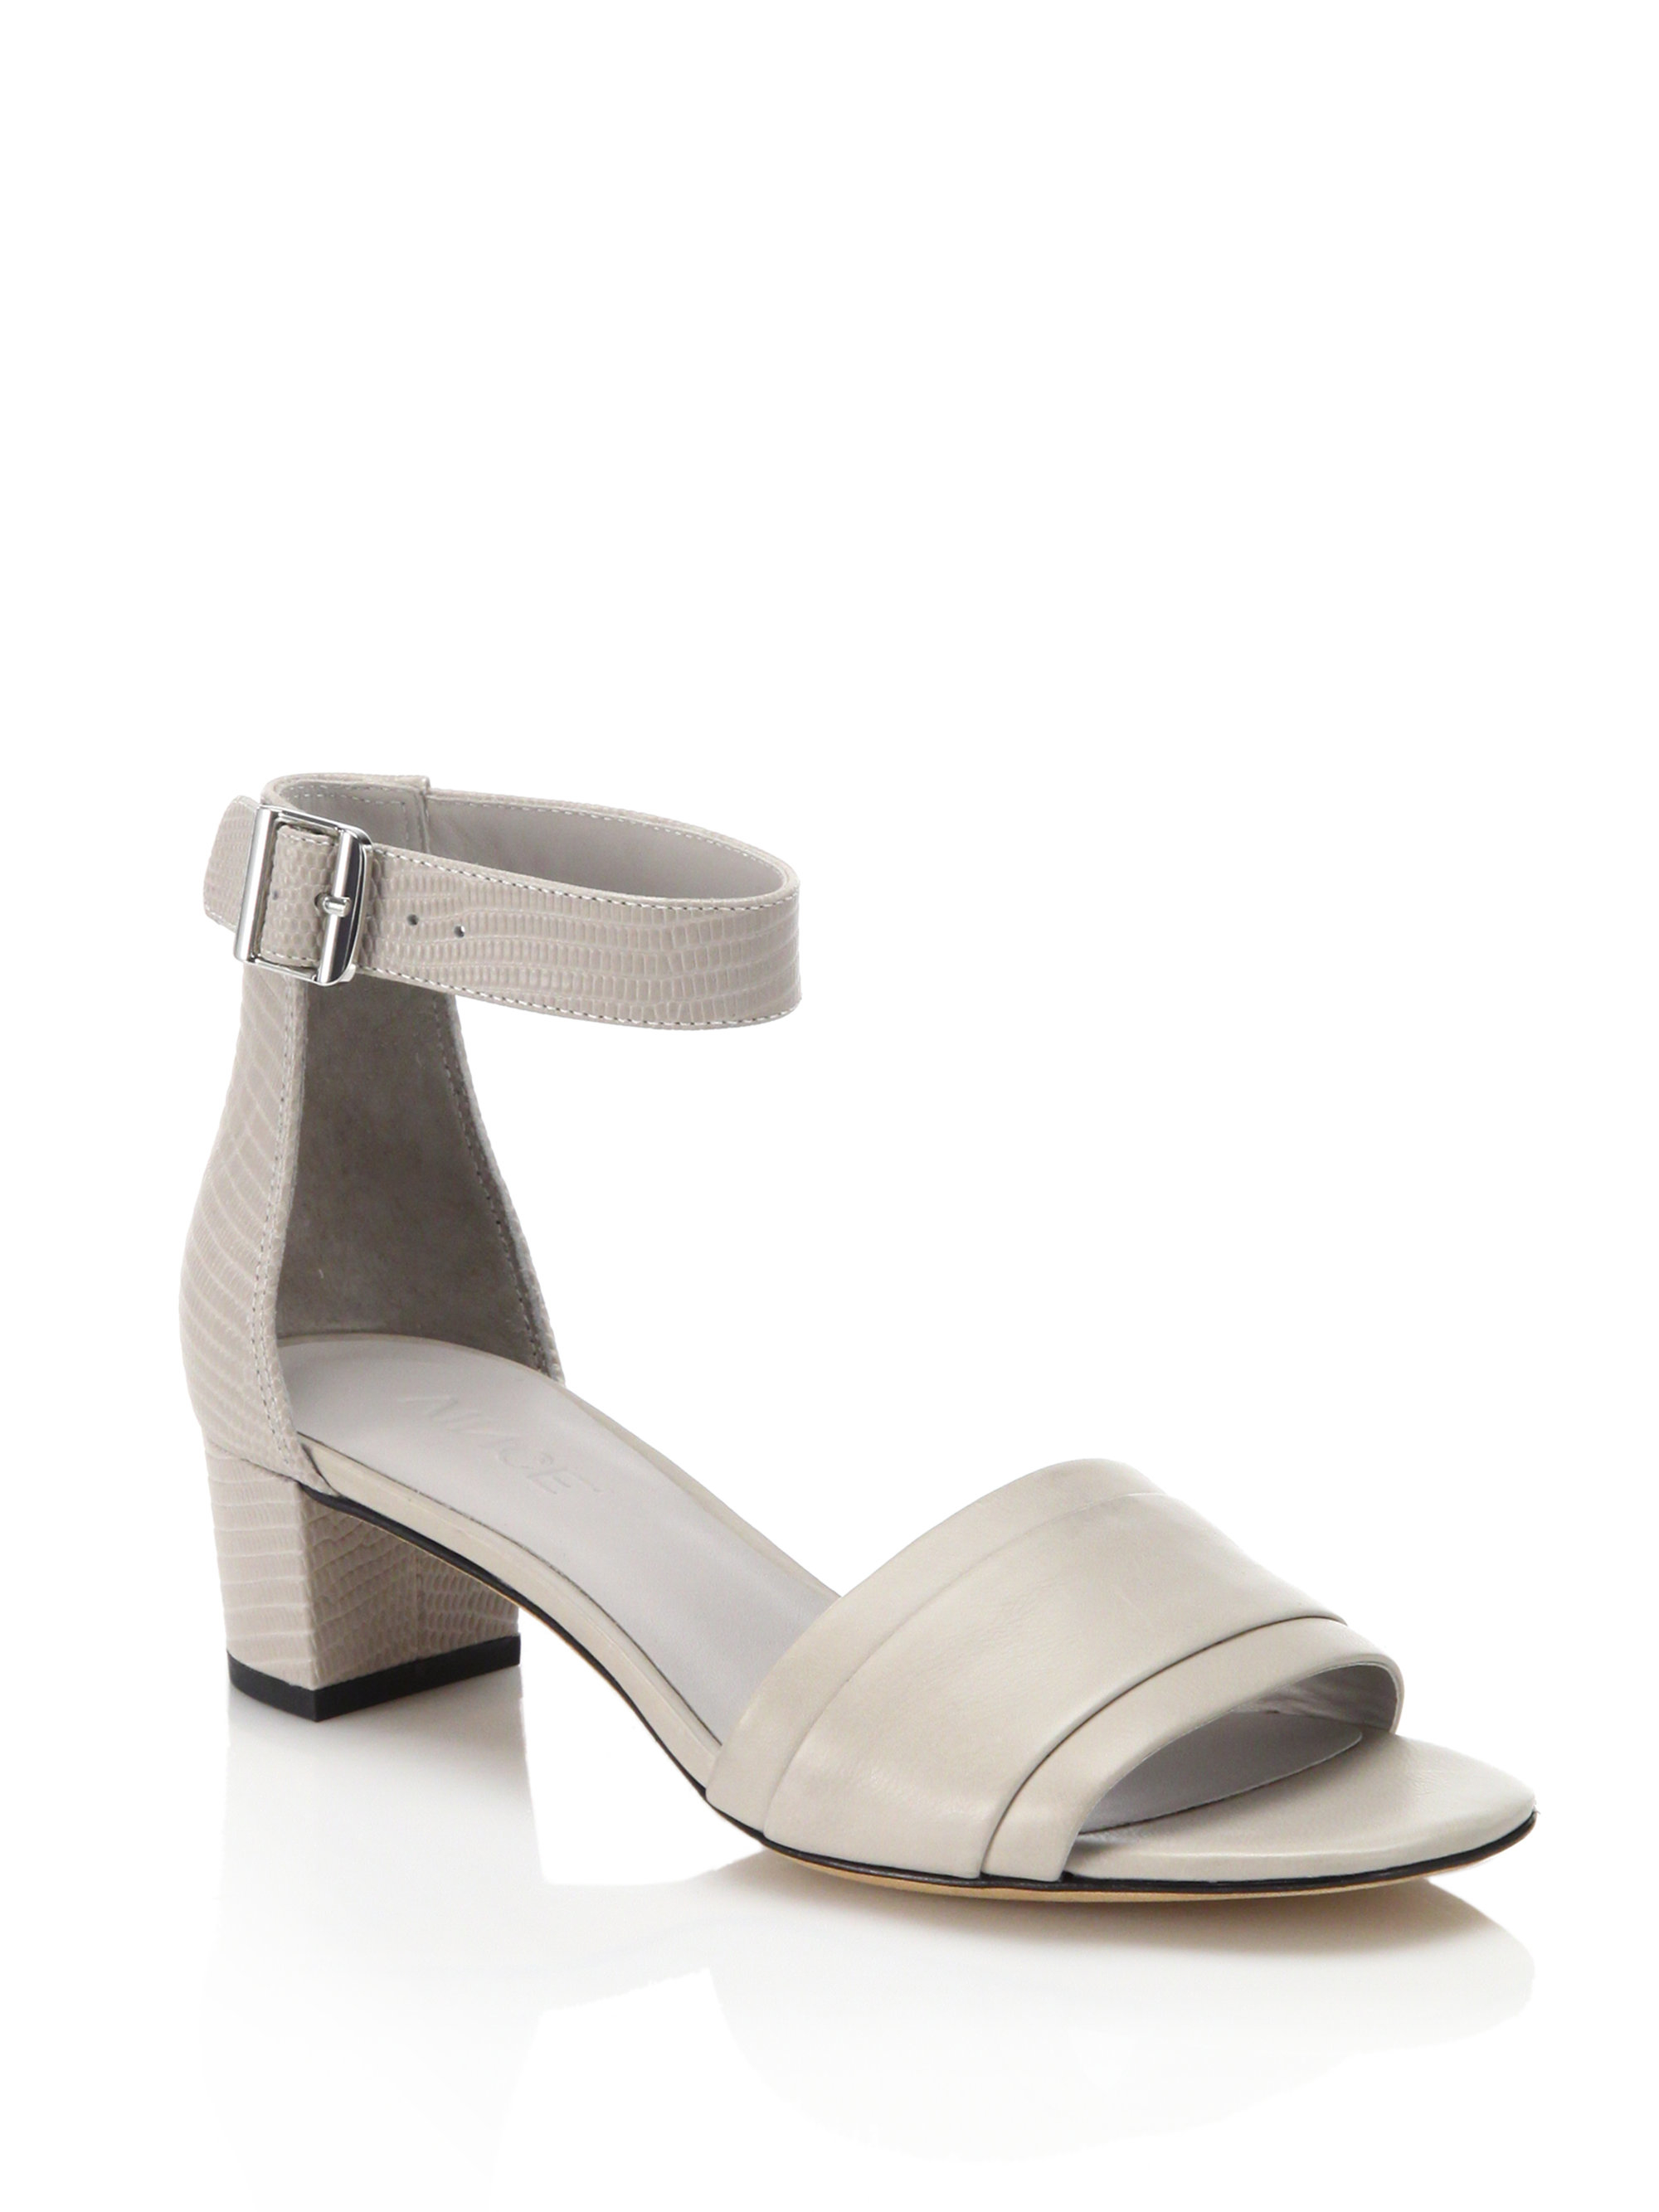 Vince Raine Leather Mid Heel Sandals In Gray Lyst